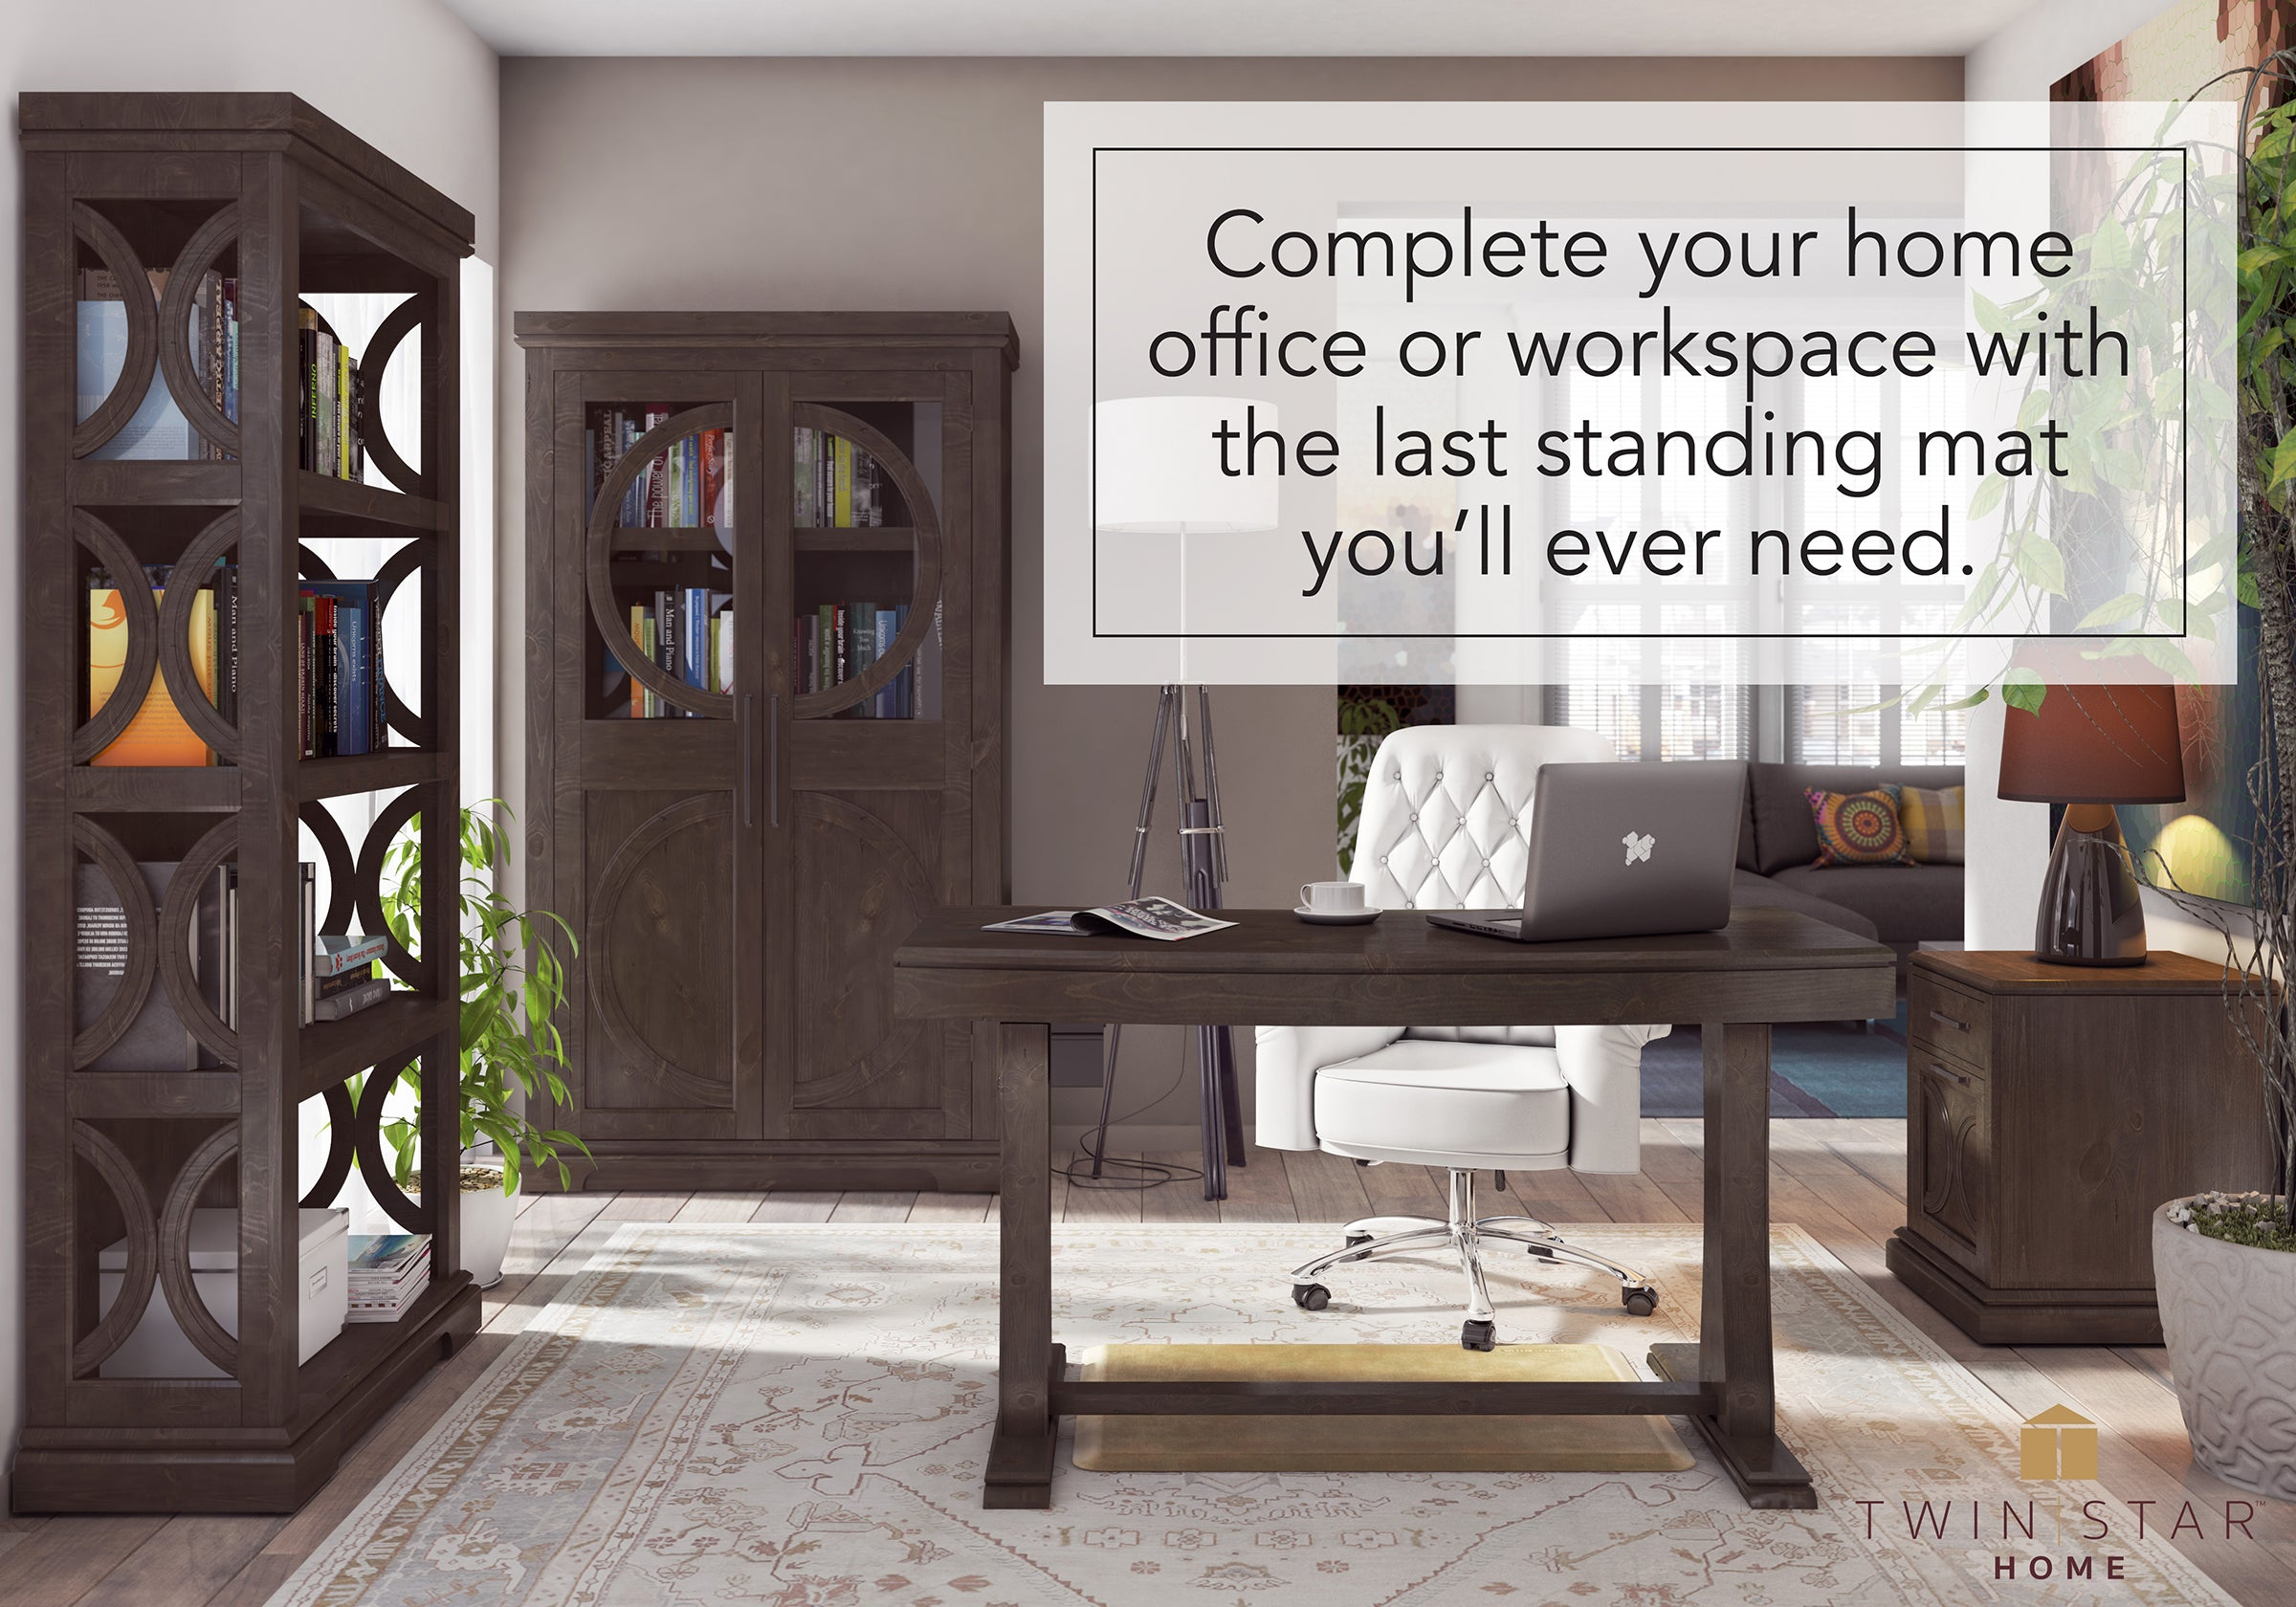 Complete Your Home Office Or Workspace With The Last Standing Mat Youu0027ll  Ever Need